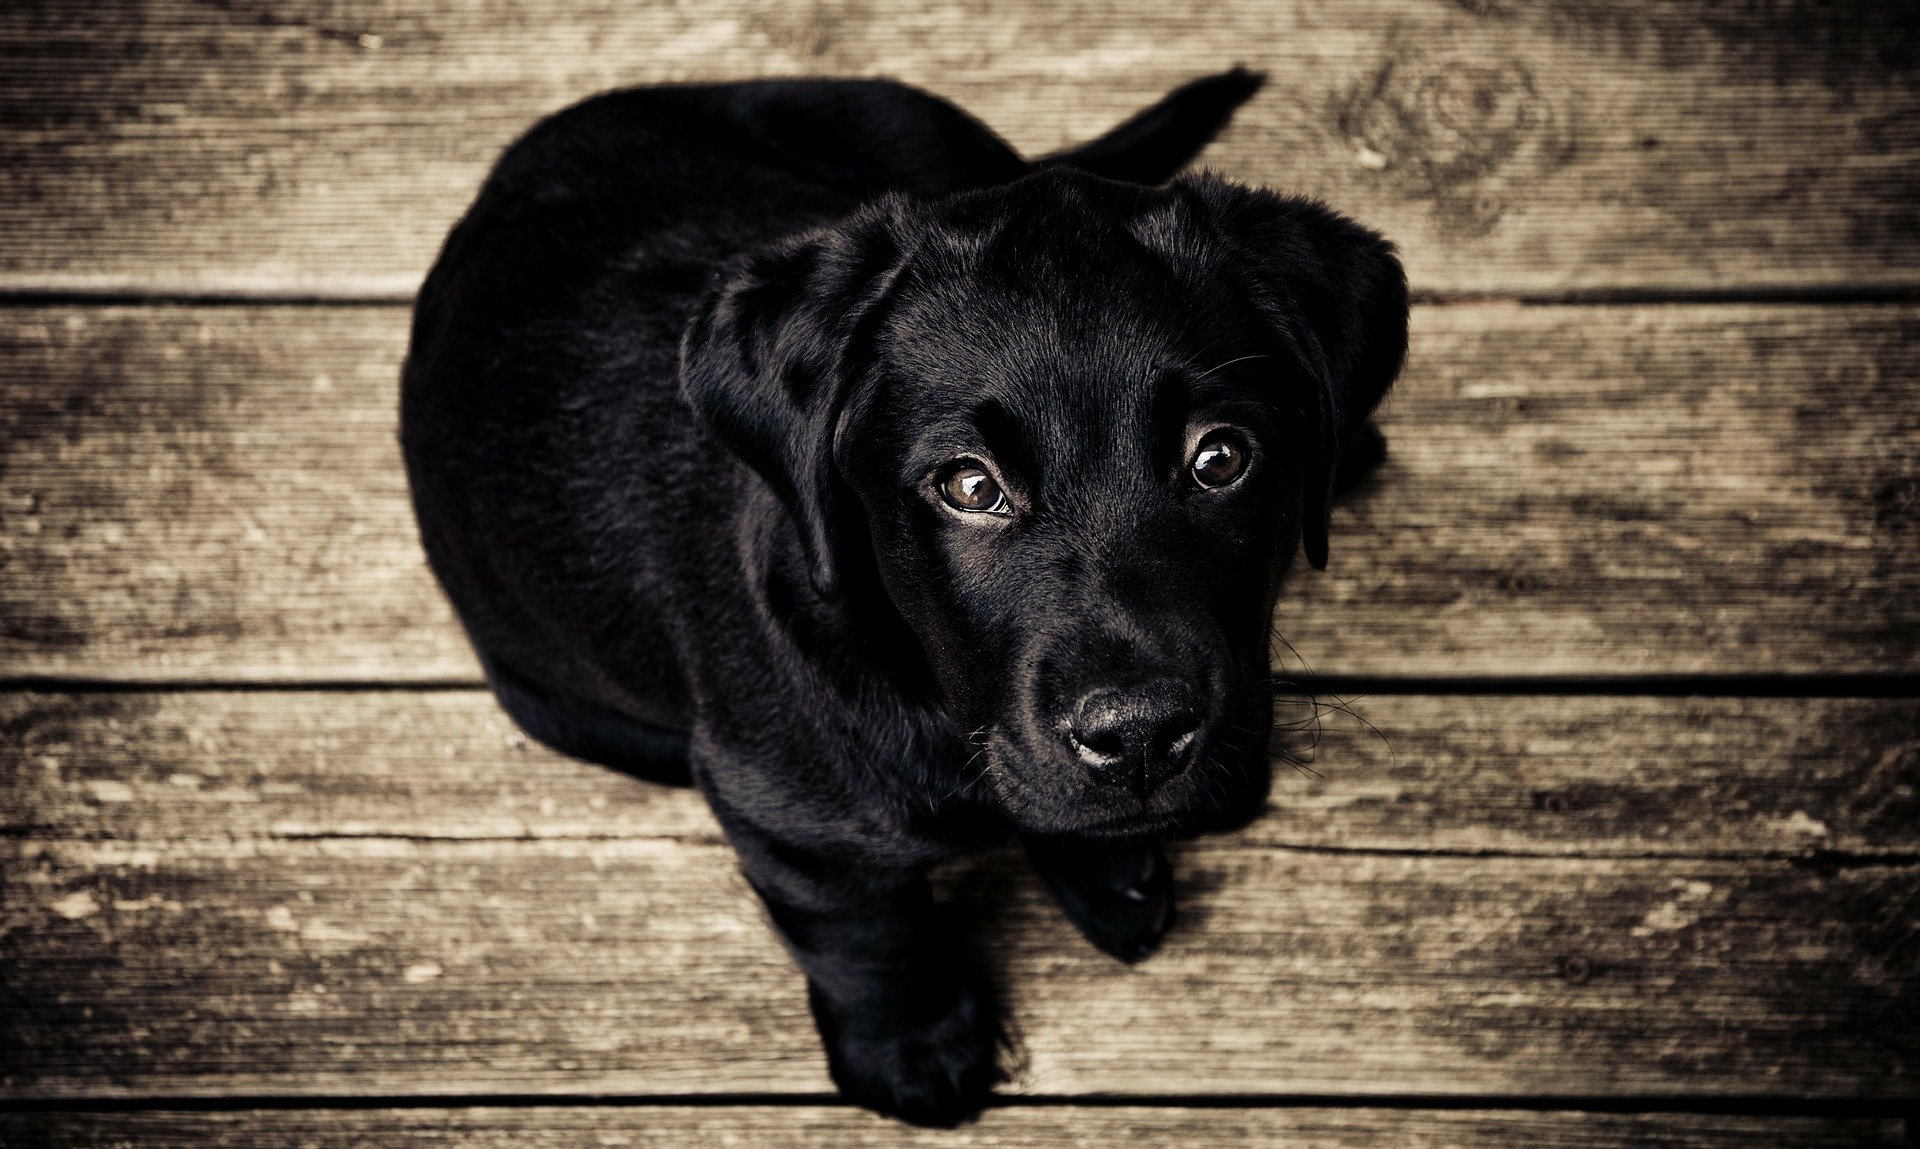 Dog disease: Cystitis in Dogs Symptoms and Treatment